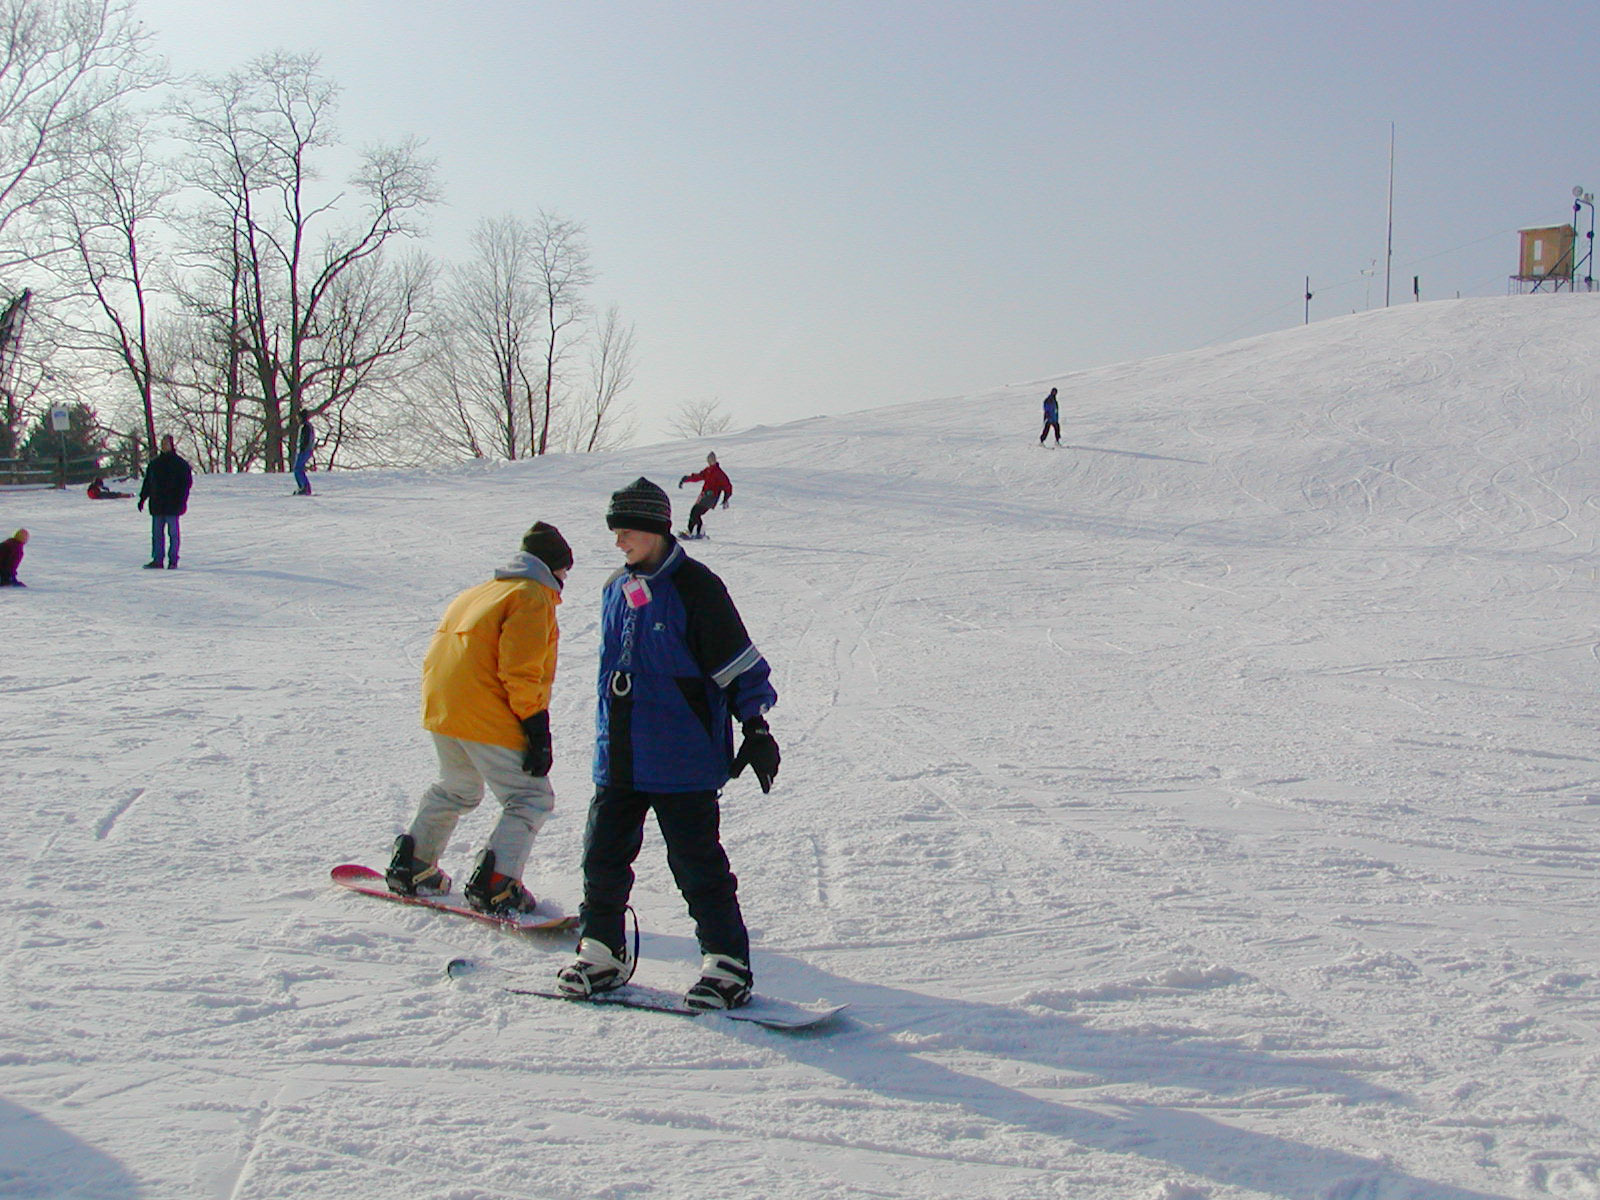 Alpine Valley OH snowboard kidsundefined